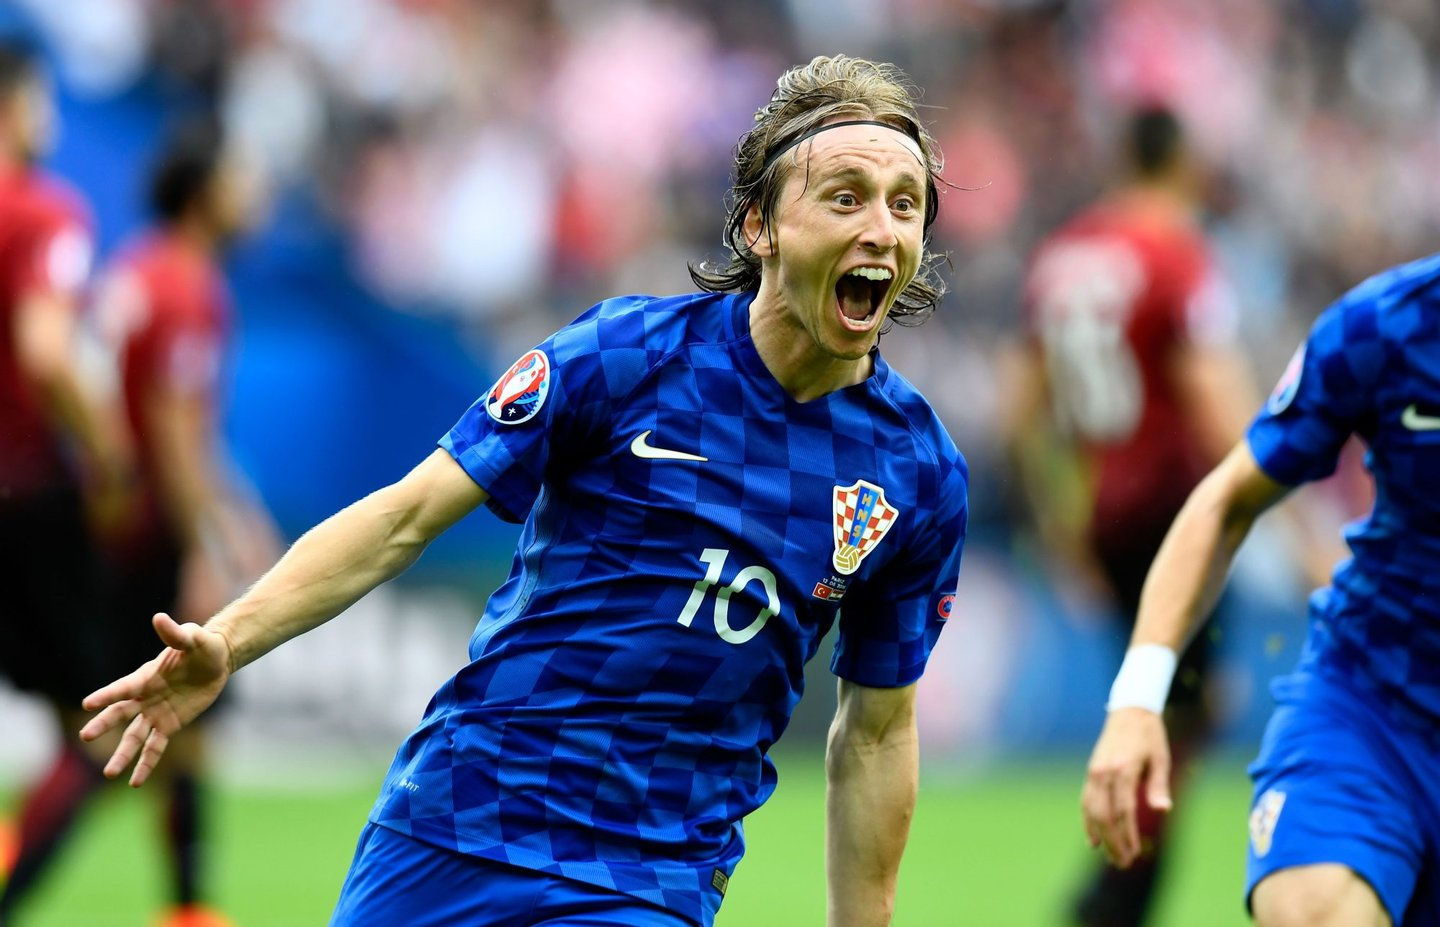 PARIS, FRANCE - JUNE 12: Luka Modric of Croatia celebrates scoring his team's first goal during the UEFA EURO 2016 Group D match between Turkey and Croatia at Parc des Princes on June 12, 2016 in Paris, France. (Photo by Mike Hewitt/Getty Images)